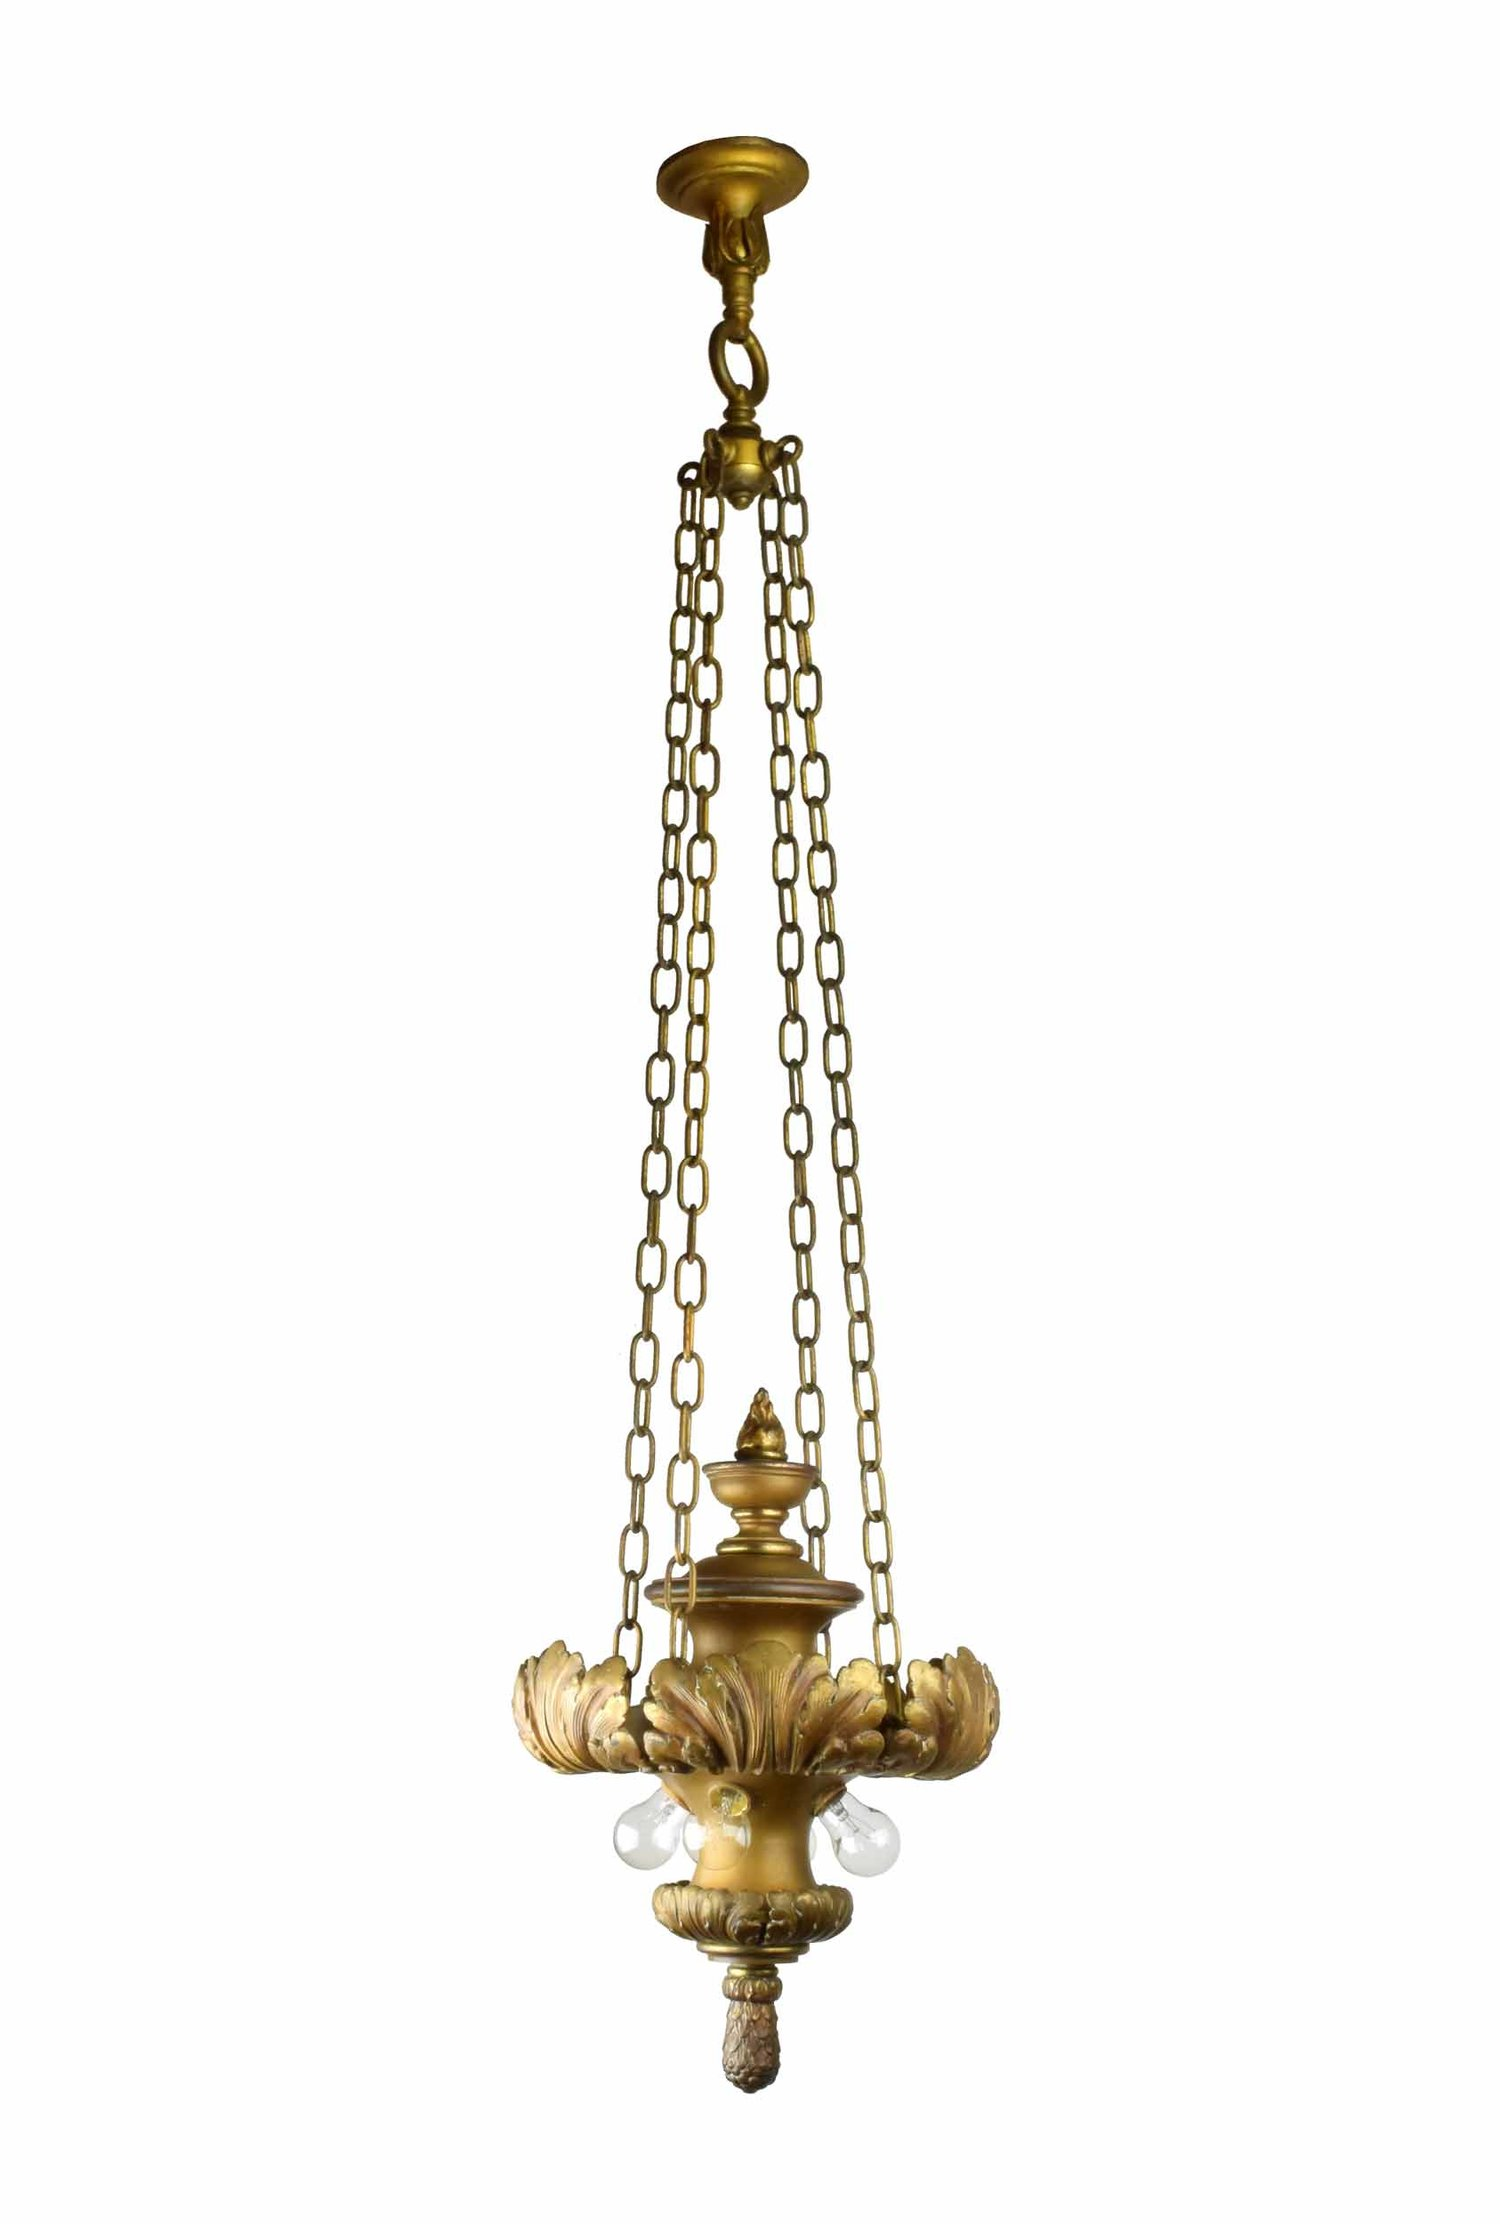 LONG BRASS PENDANT WITH ACANTHUS LEAF DESIGN     Click here for more information